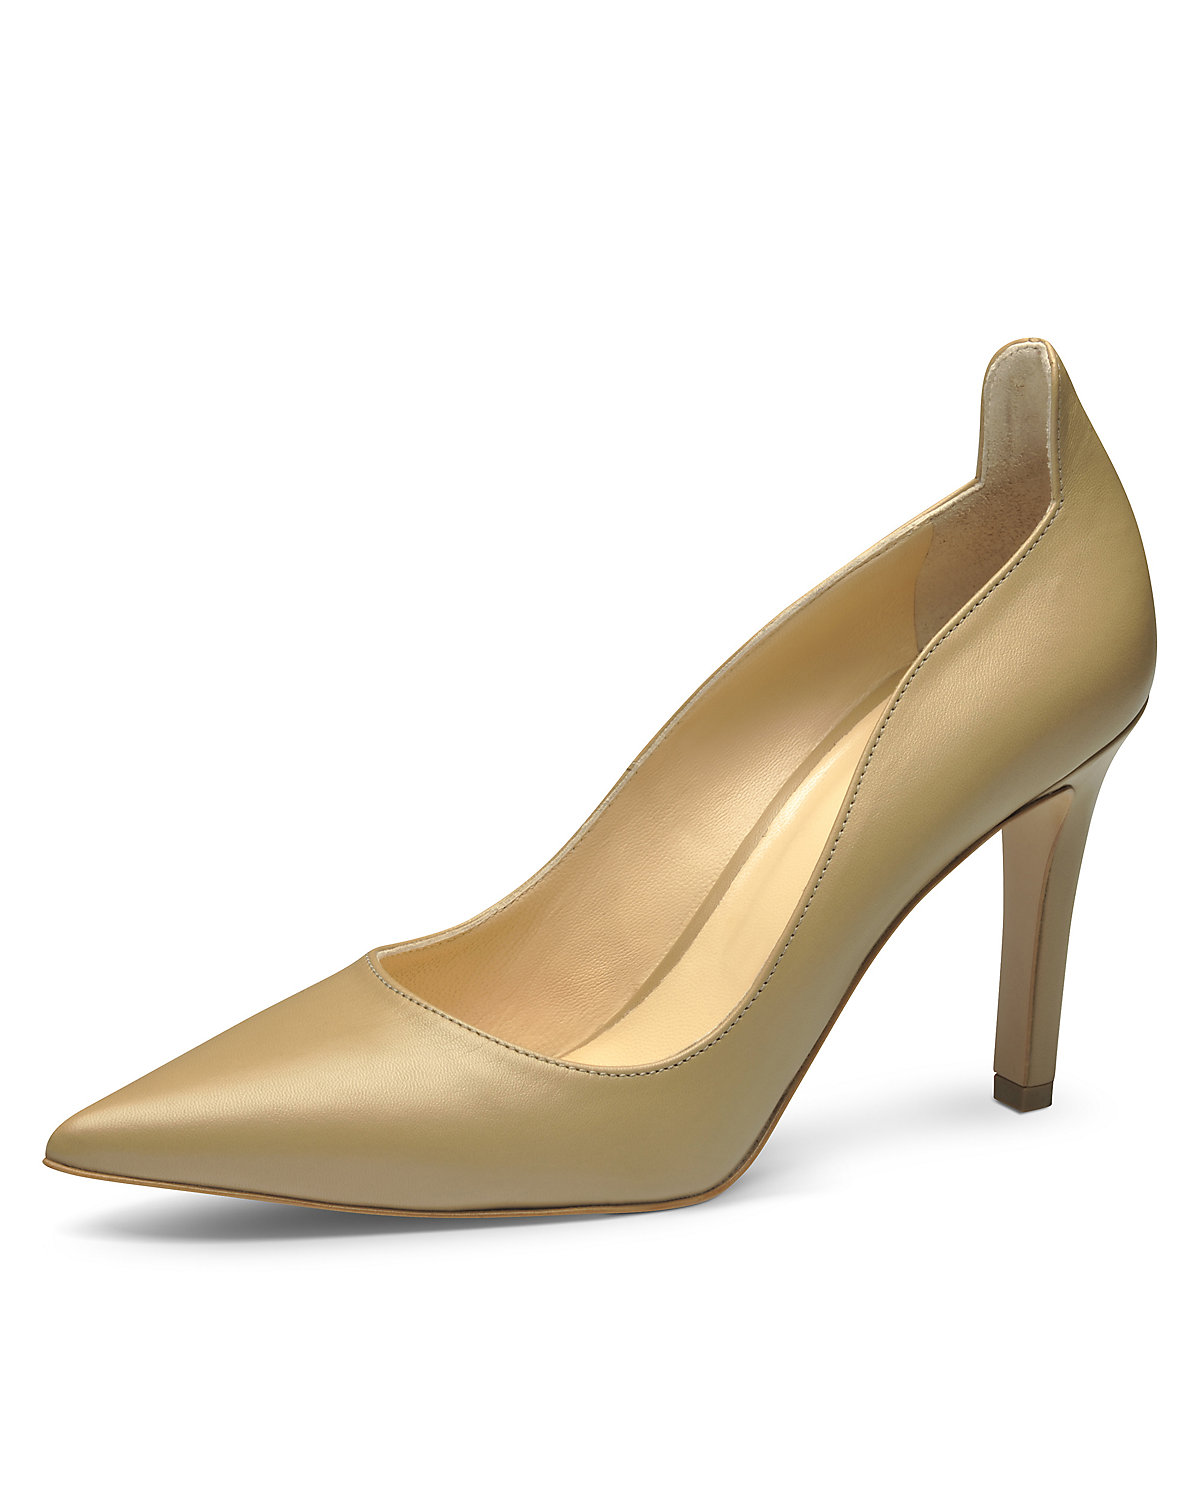 Evita Shoes, Evita Shoes Pumps, beige